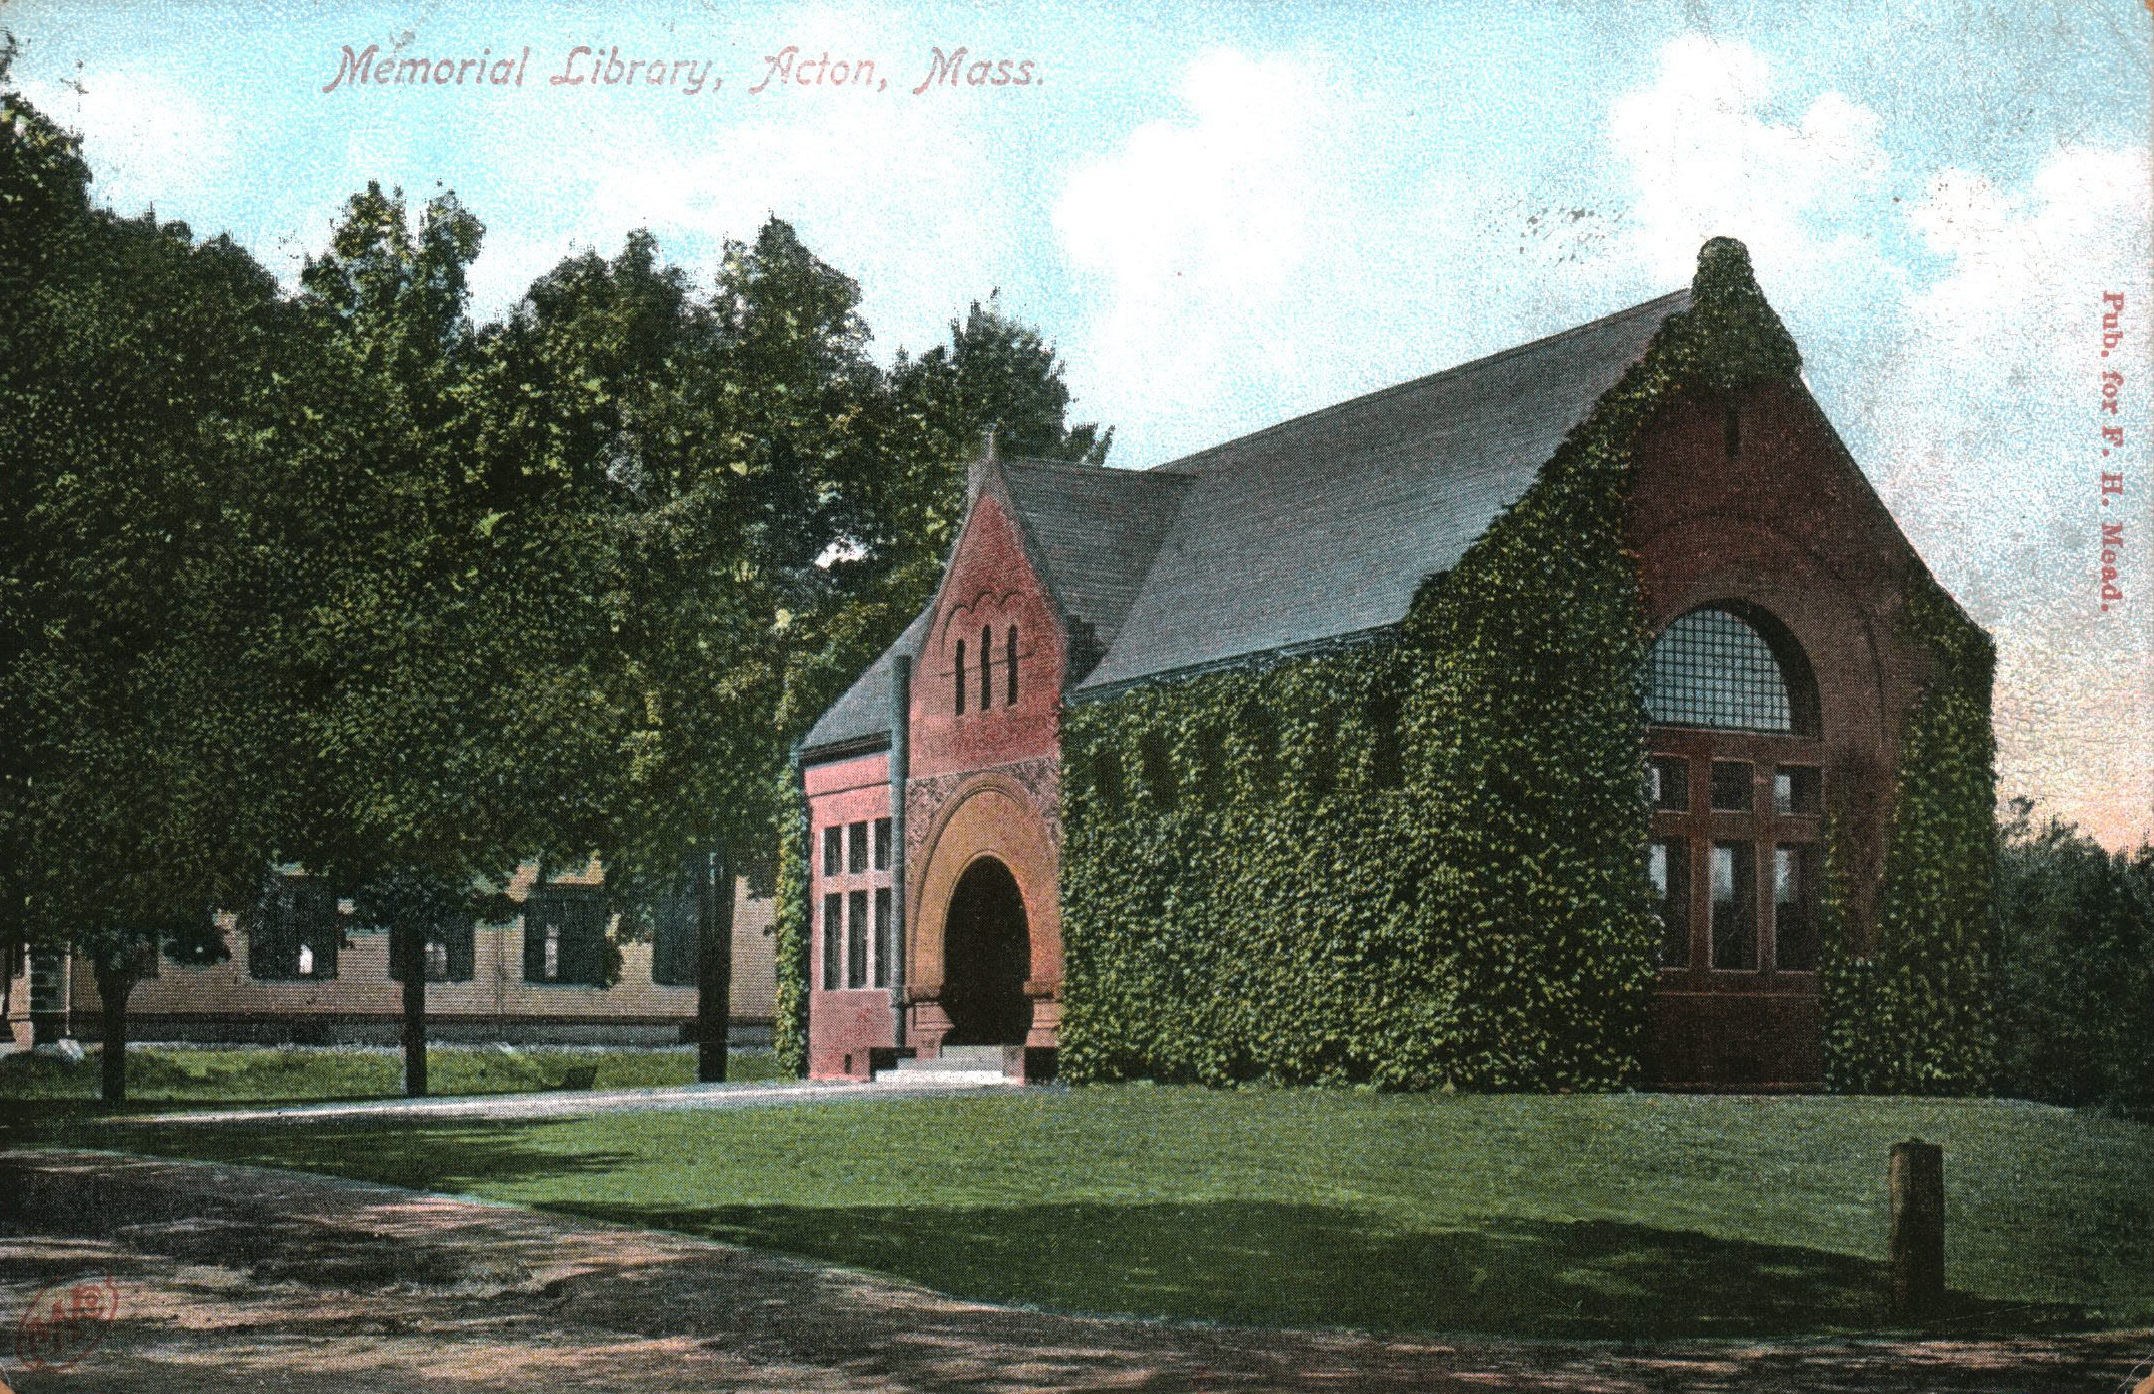 Acton Memorial Library, postcard postmarked 1906